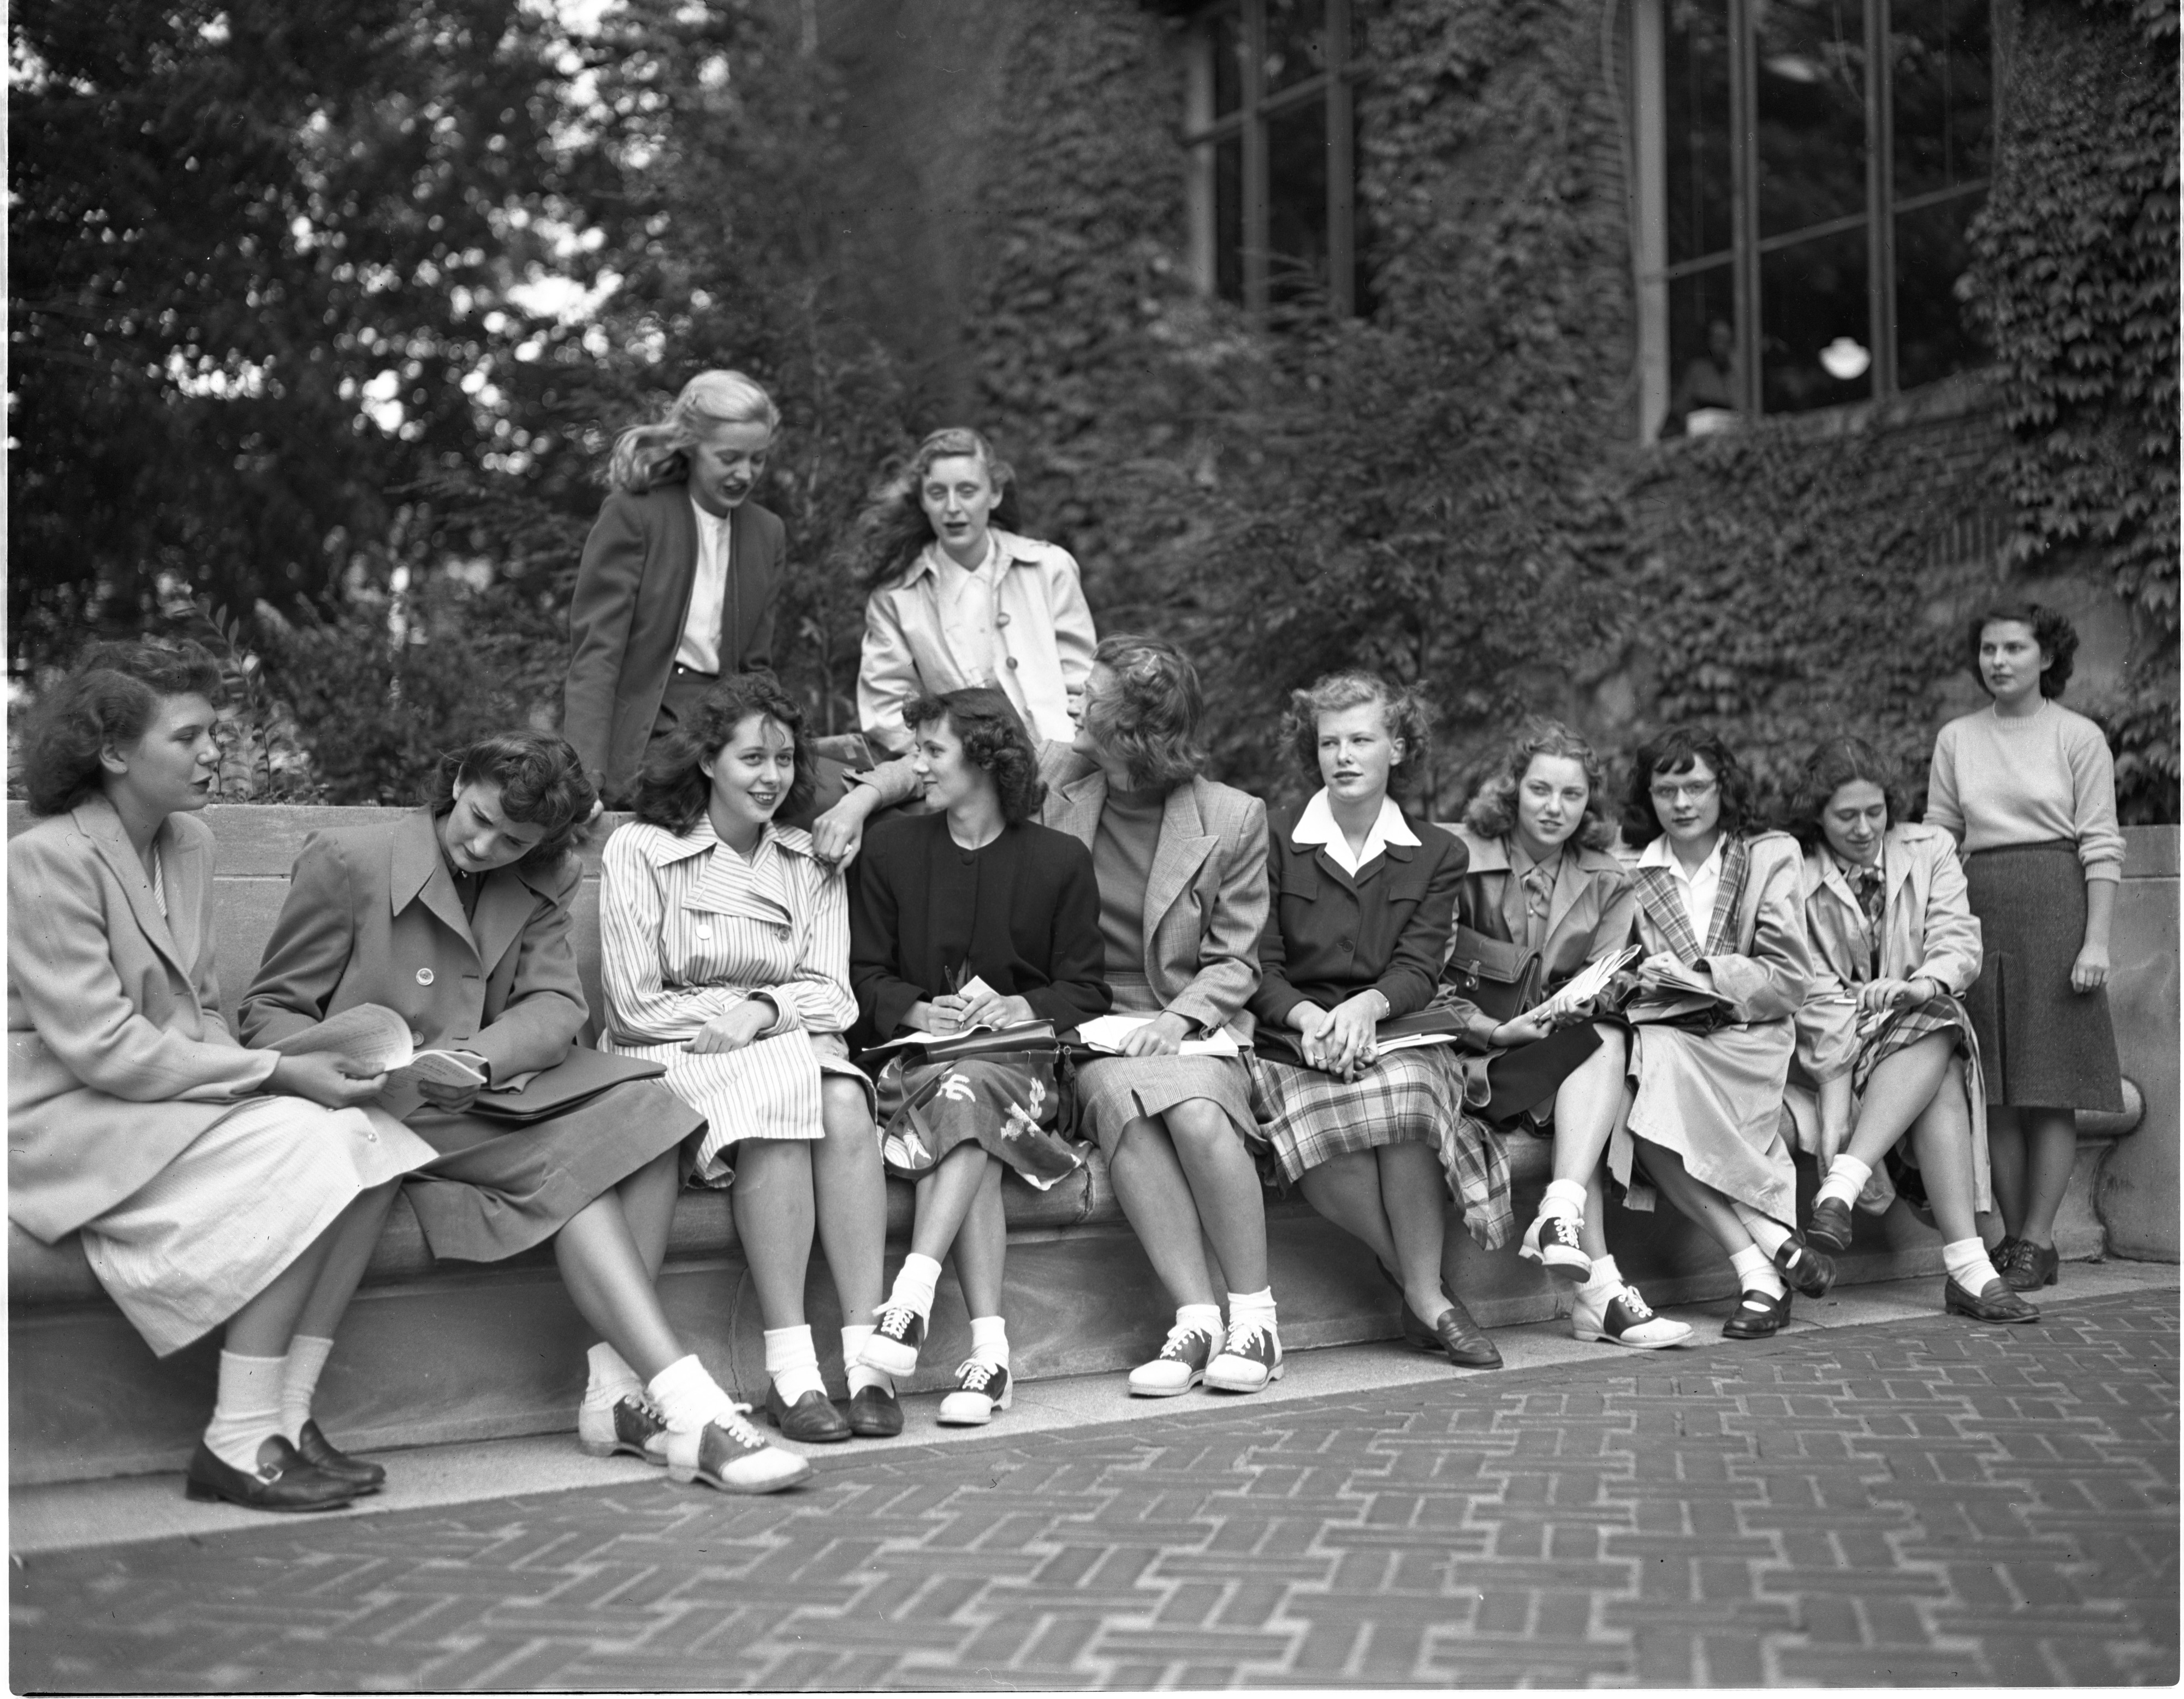 New University Of Michigan Students Wait For Their Adviser During Freshman Orientation, September 1947 image